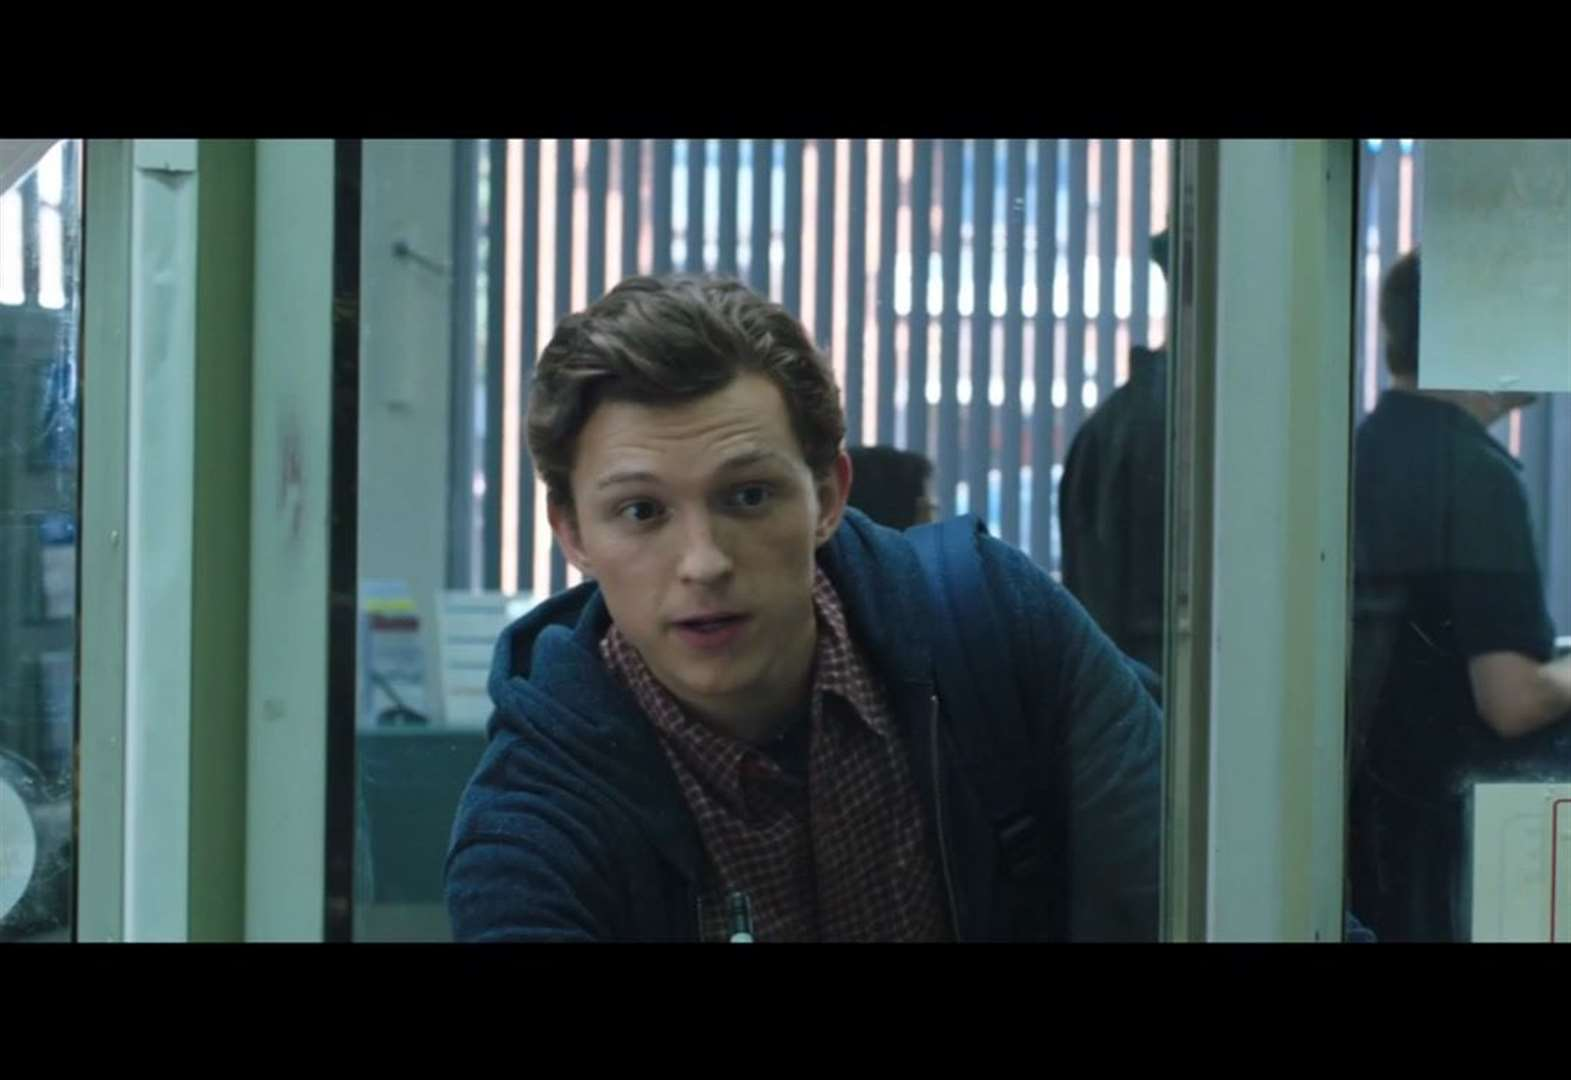 Spiderman: Far From Home tops new film rental list